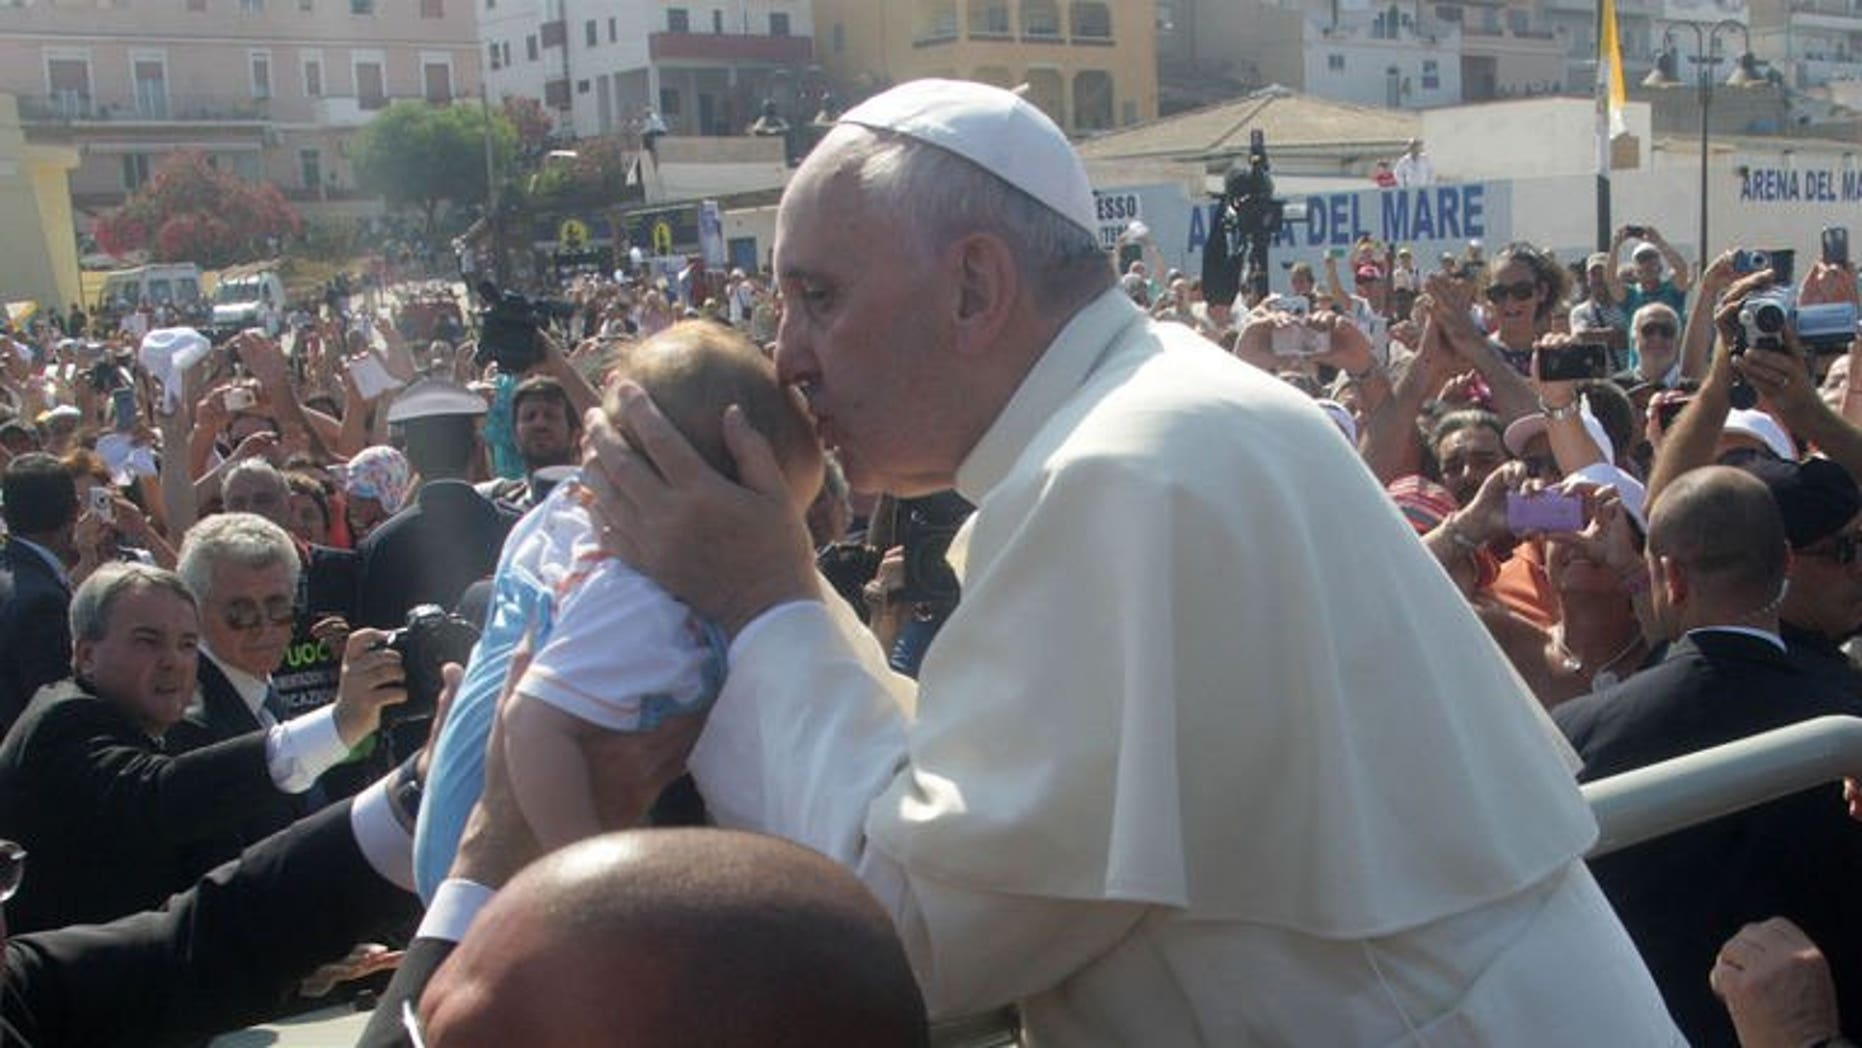 """Pope Francis blesses a child during his visit to the island of Lampedusa, a key destination of tens of thousands of would-be immigrants from Africa, on July 8, 2013. Vanity Fair in Italy on Wednesday named Pope Francis its """"man of the year"""", saying the pontiff's first 100 days at the Vatican had already made him one of the world's top leaders."""